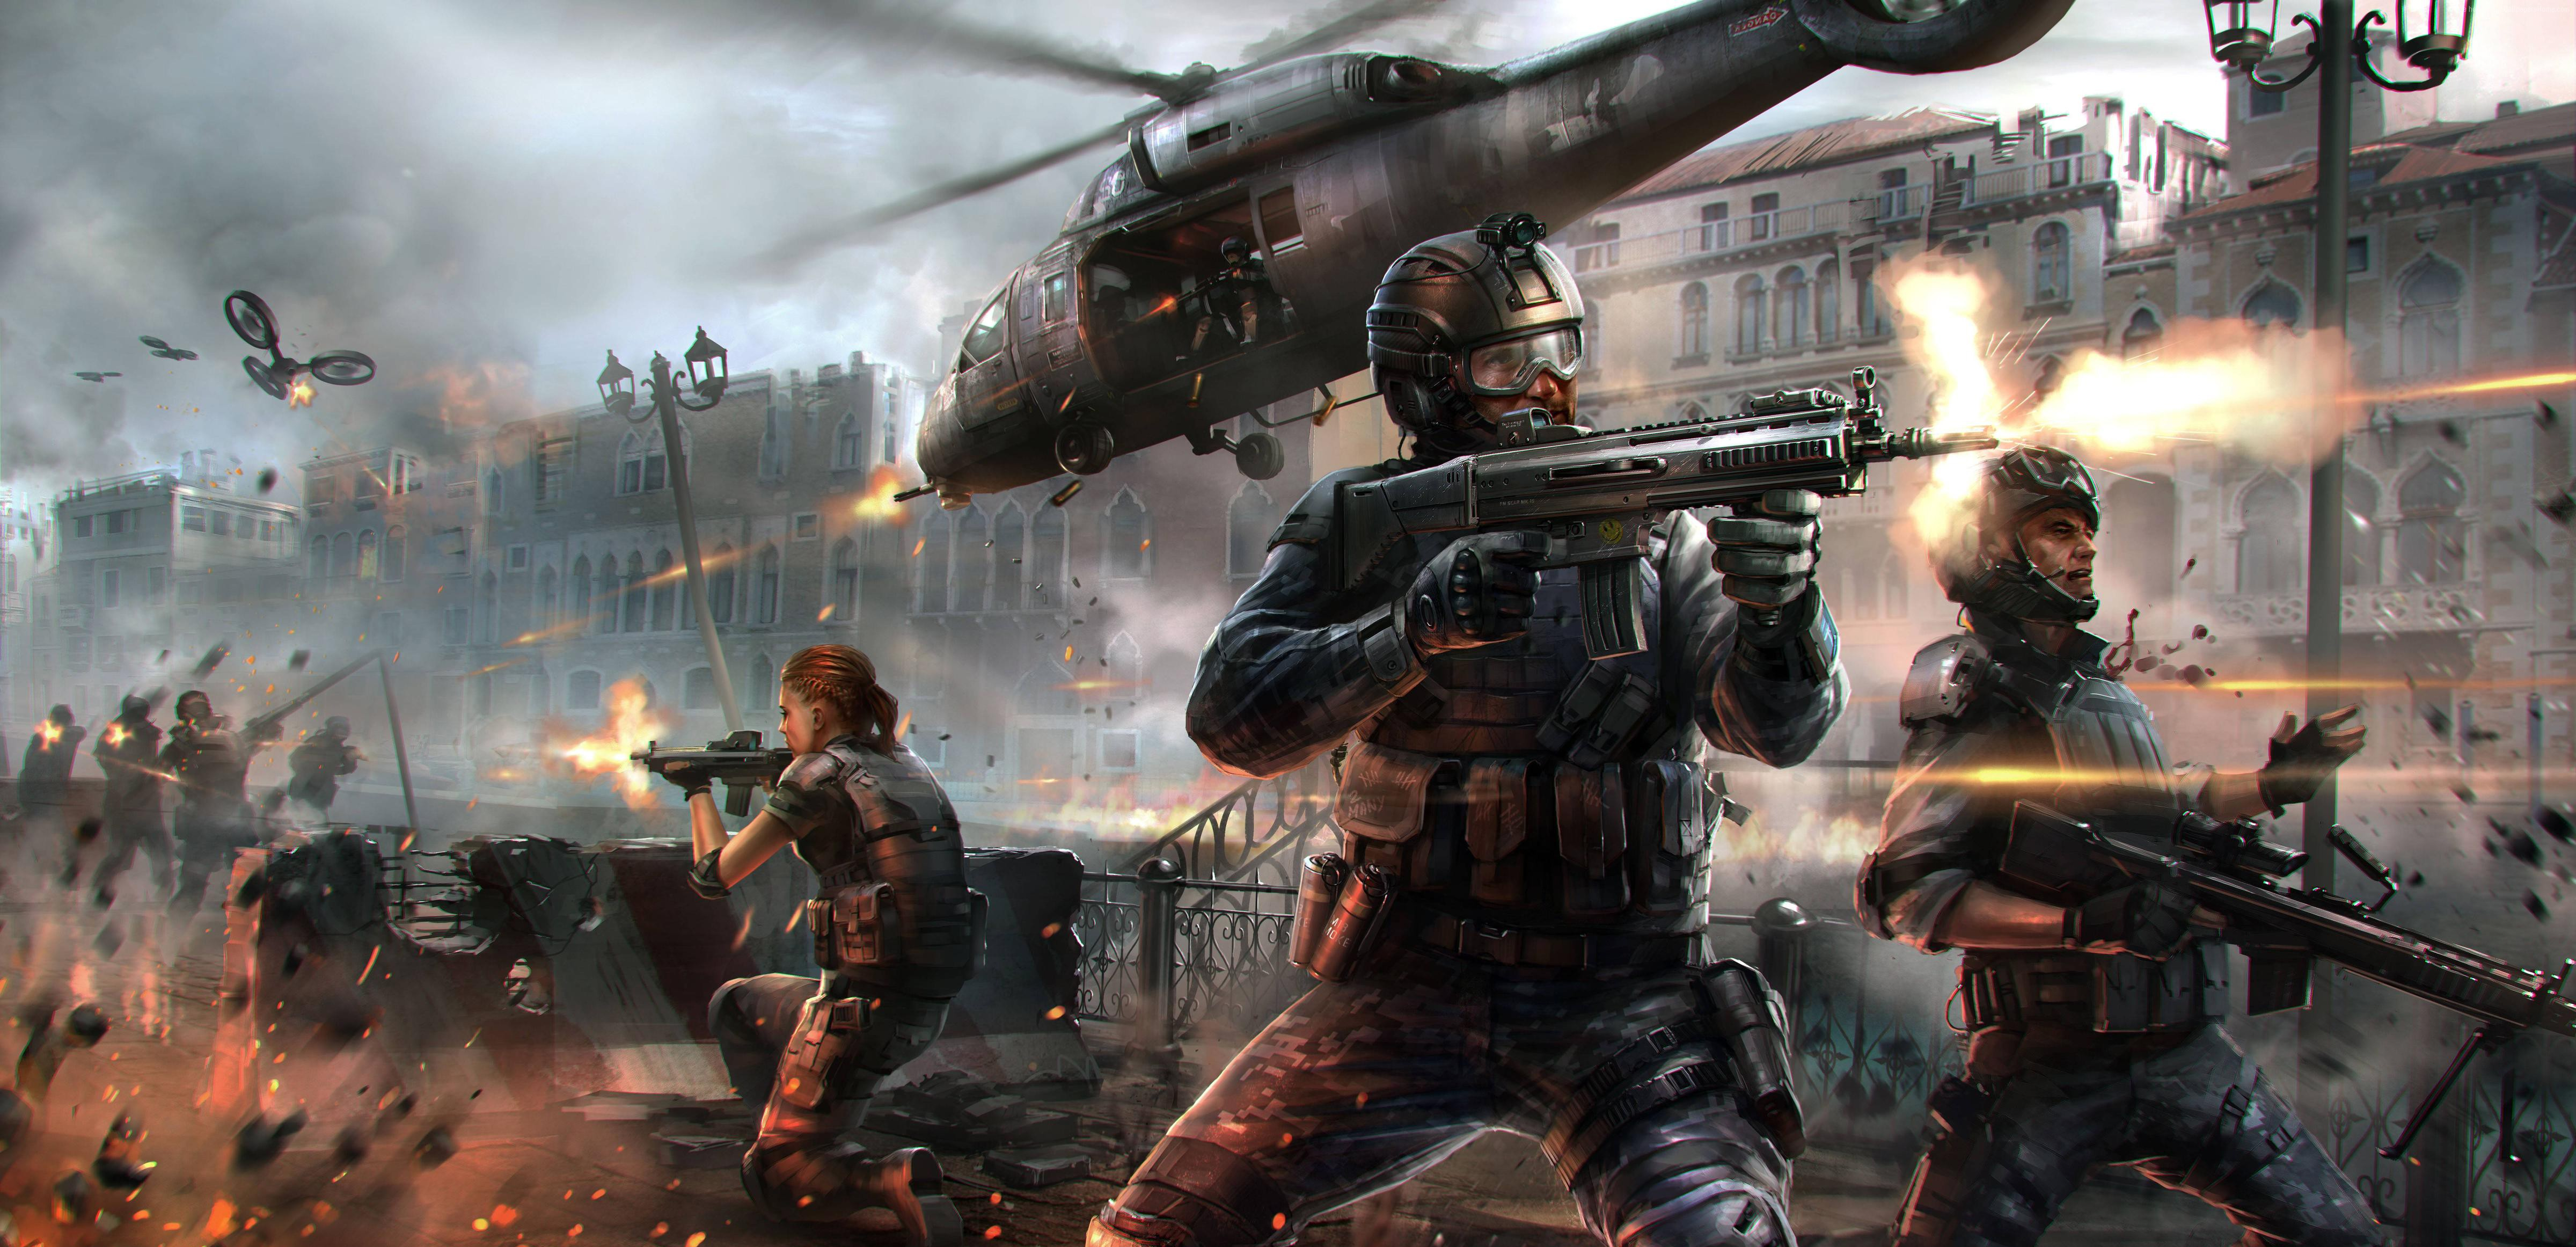 helicopter shooting game download with Modern  Bat 5 Blackout Game Mmo Shooter Mmofps Battle 2056 on Battlefield 4 together with Details also Best First Person Shooter Games Android Online besides 853854410572360490 furthermore Desert Strike.